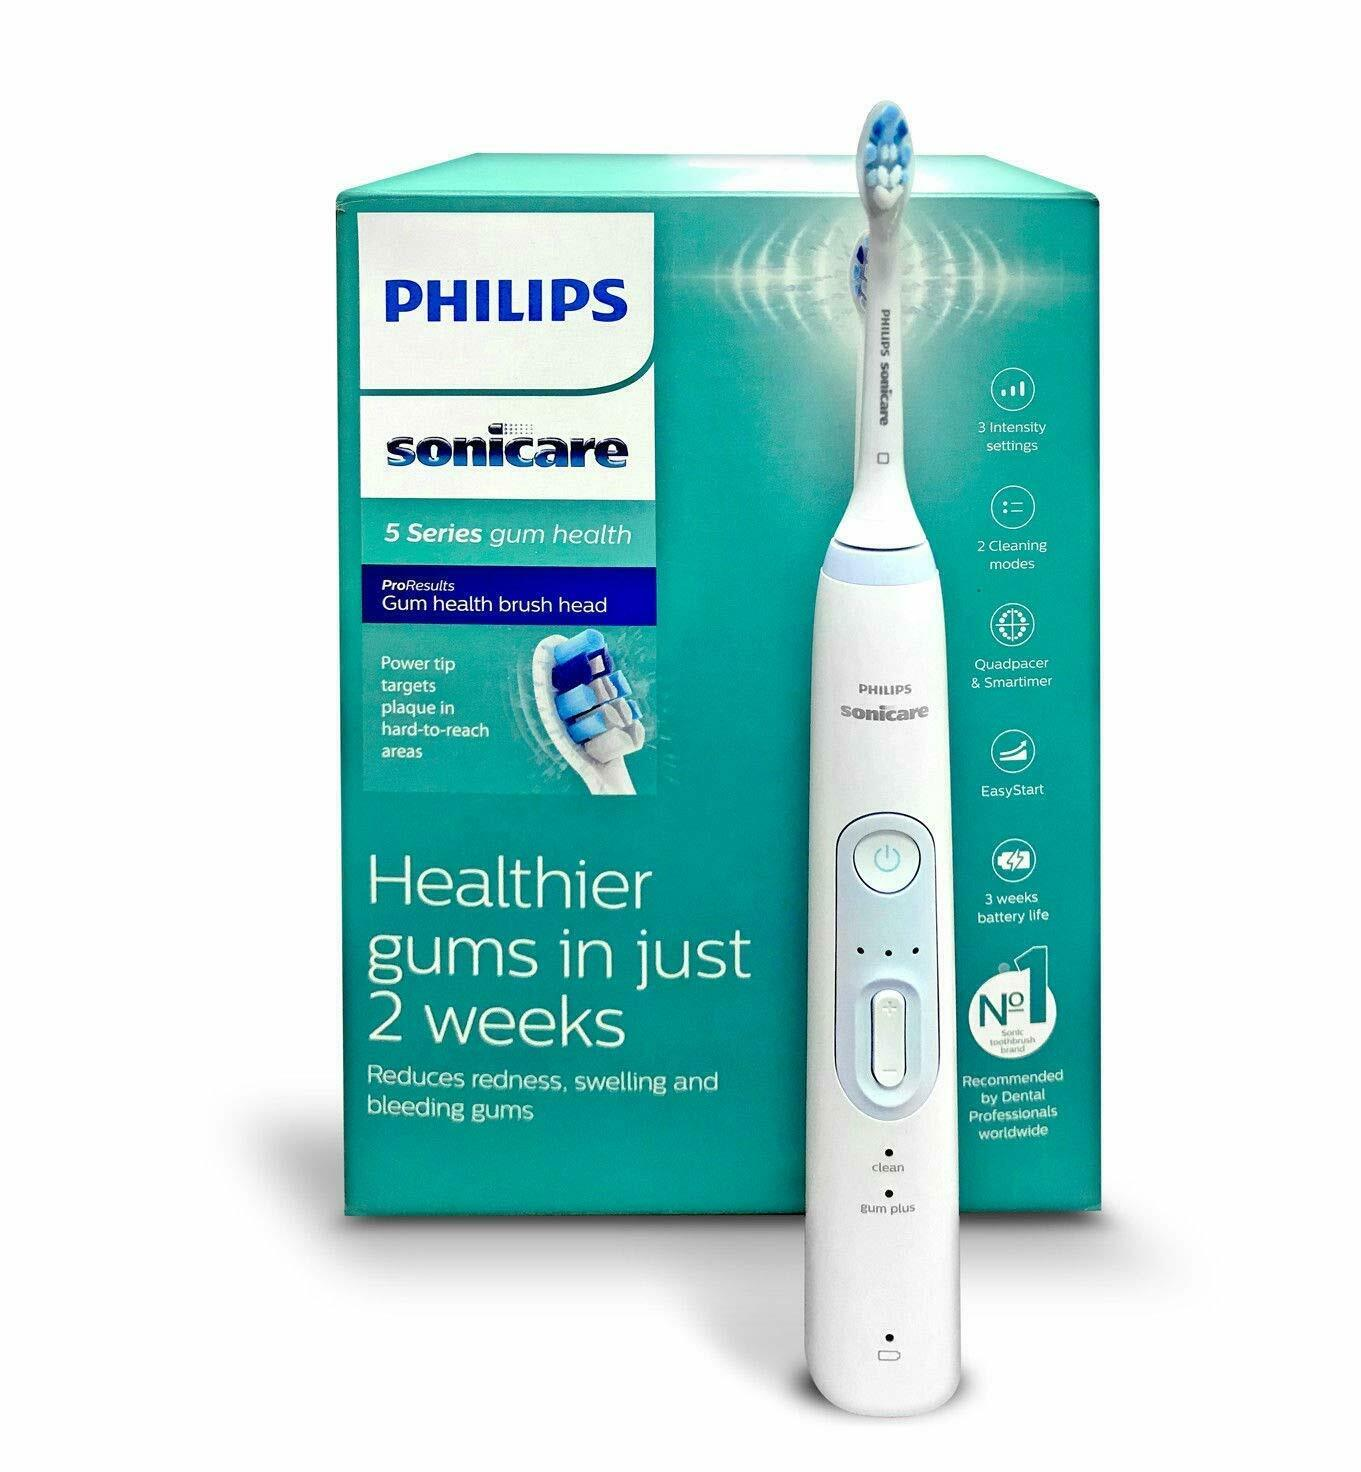 Philips Sonicare 5 Series Gum Health Sonic Electric Power